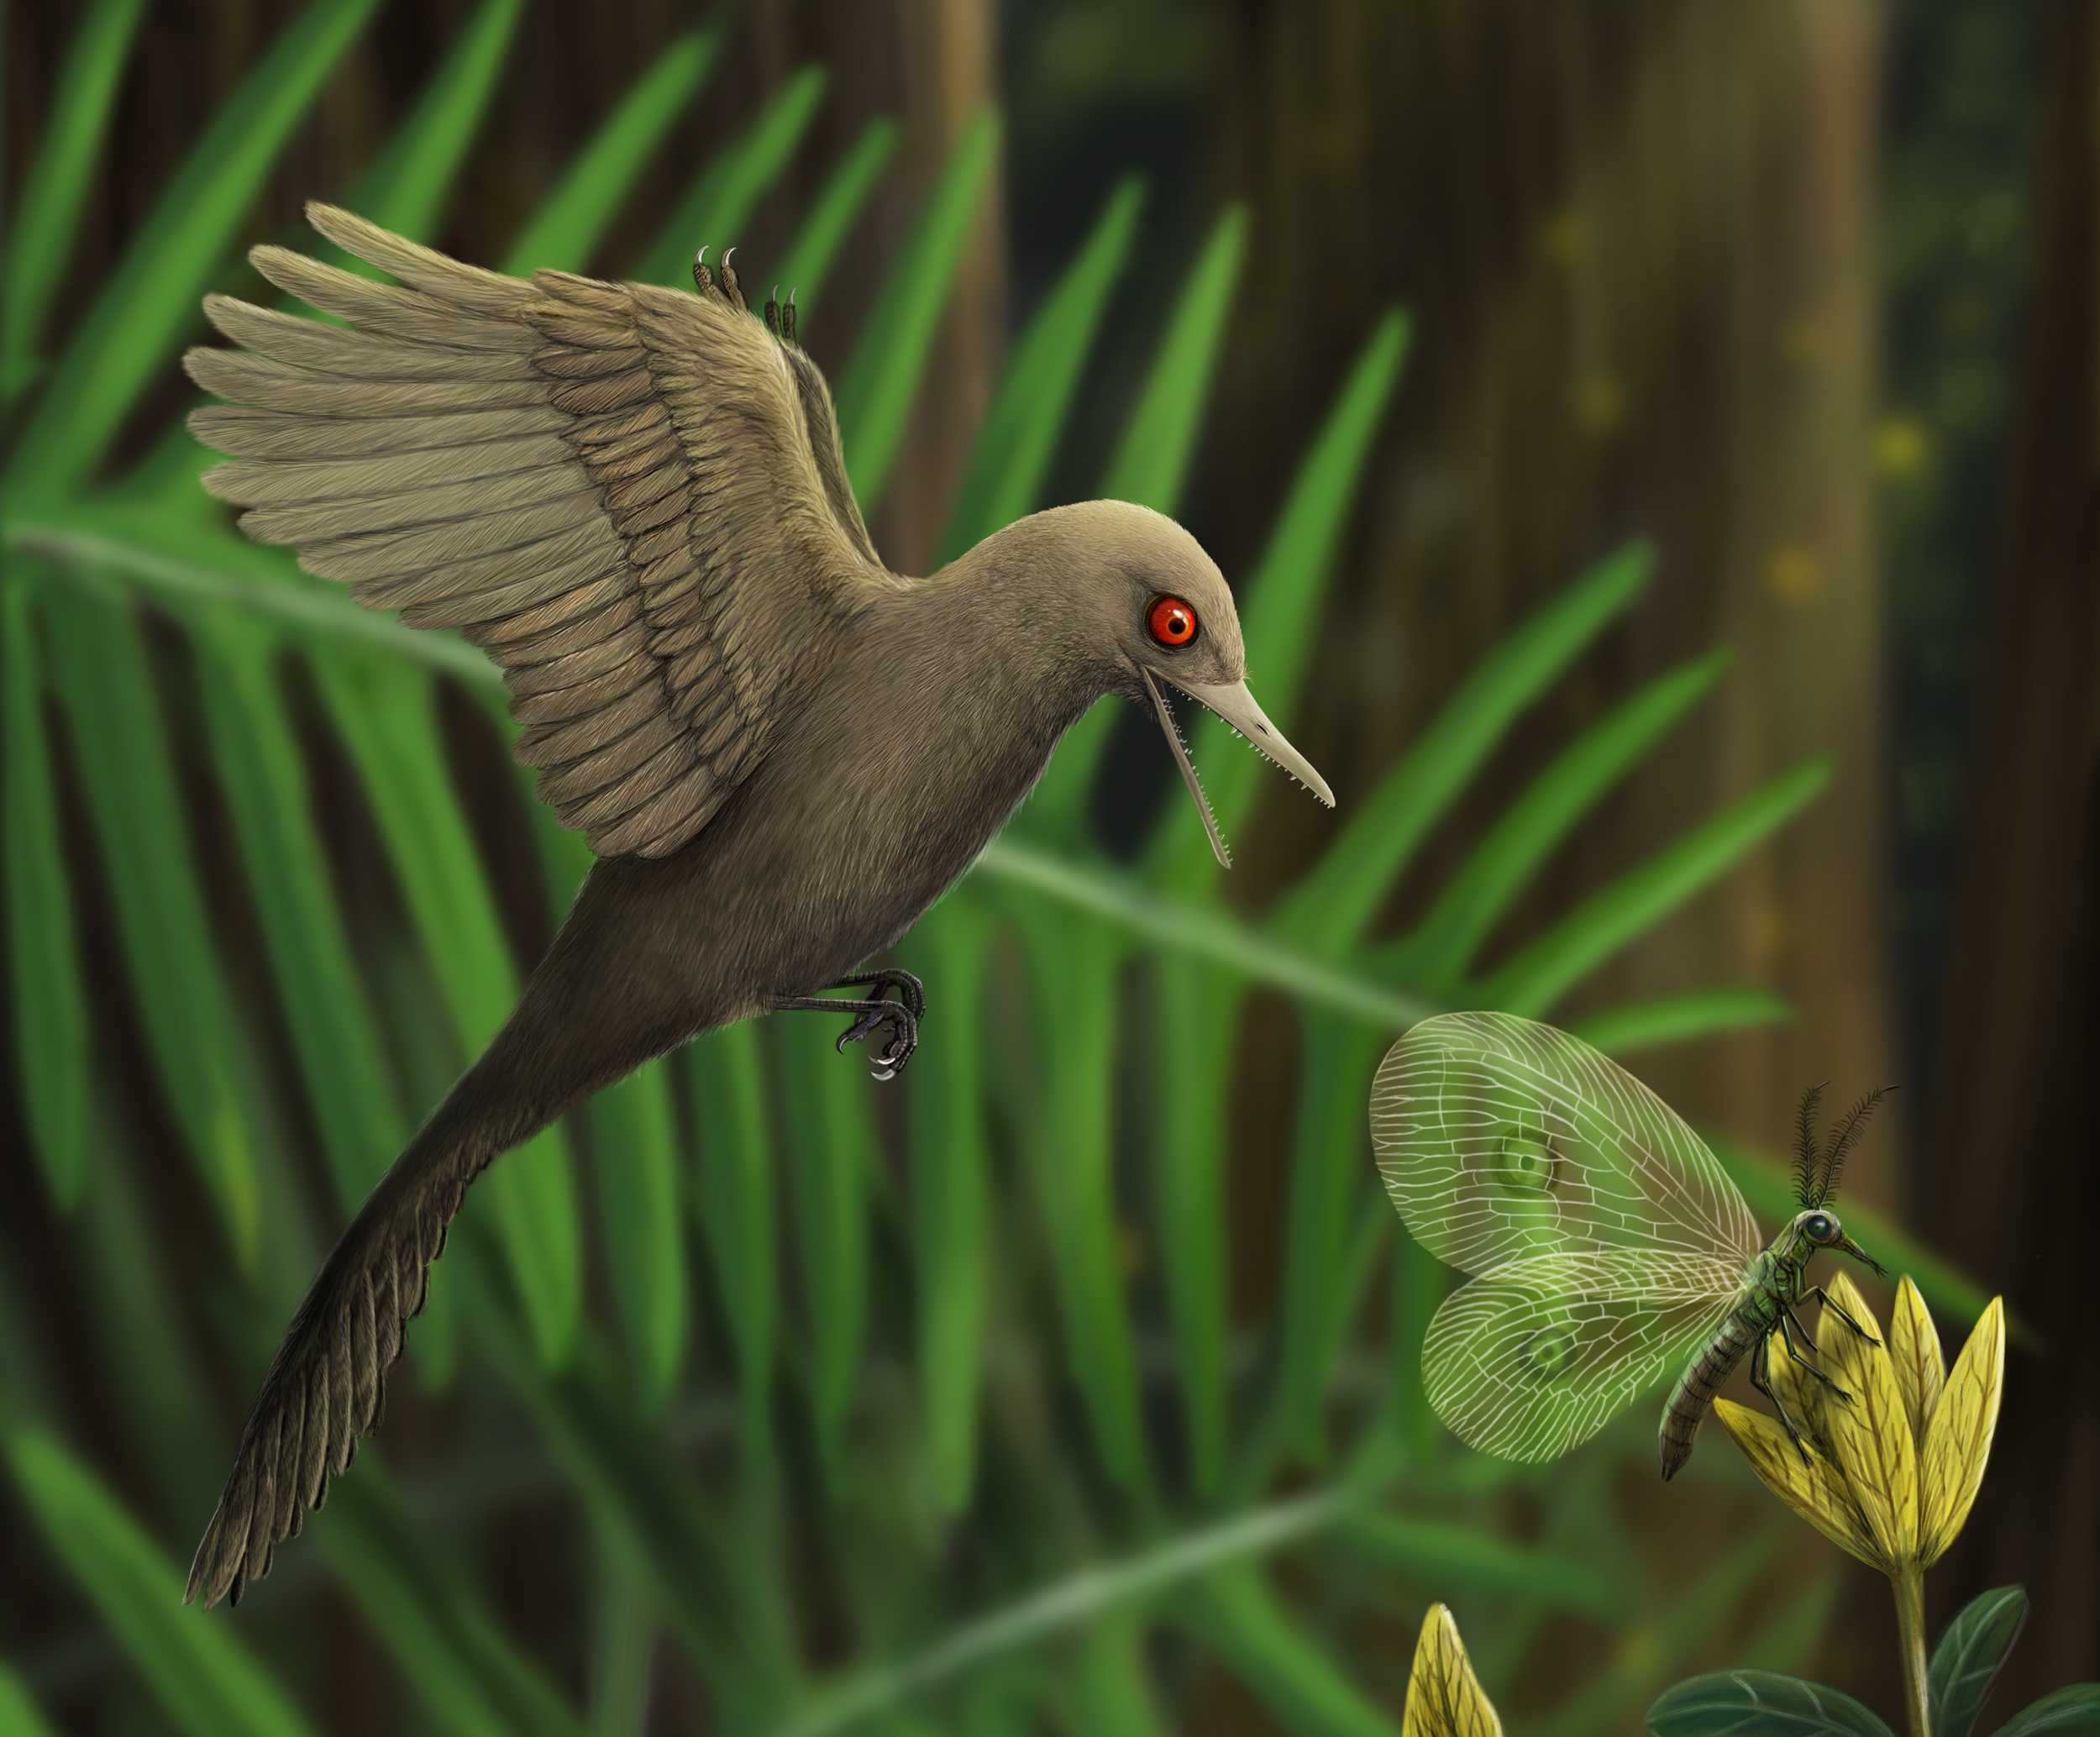 An artistic rendering of Oculudentavis imagining what it looked like preying on an insect. (HAN Zhixin / Los Angeles Natural History Museum)